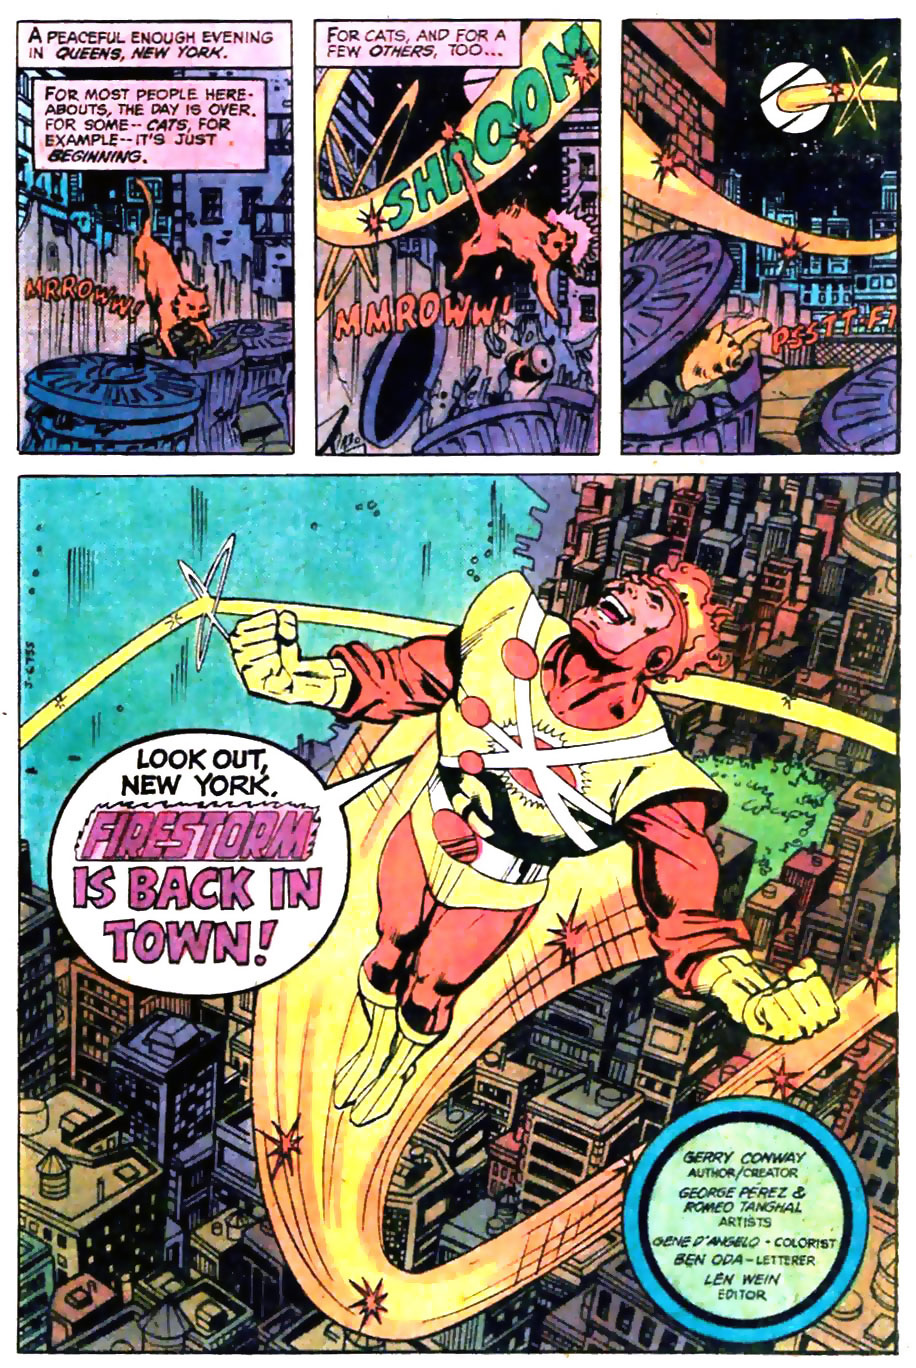 George Perez Firestorm art from The Flash #289